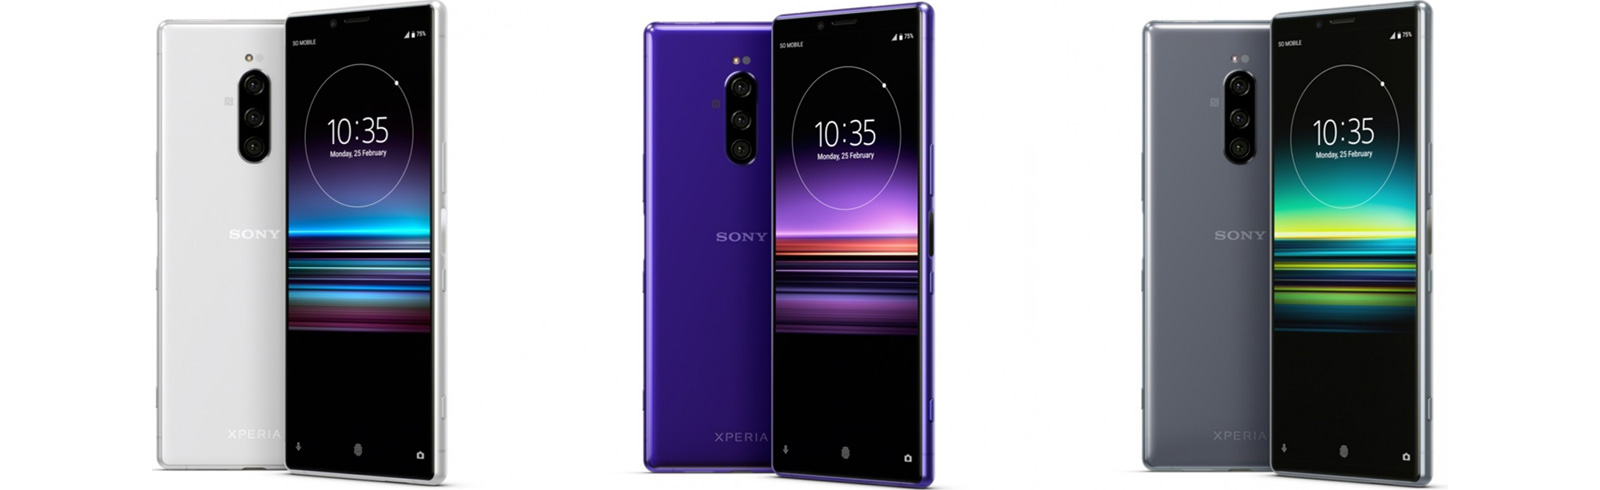 Sony Xperia 1 with a 4K UHD OLED display and triple rear camera is official